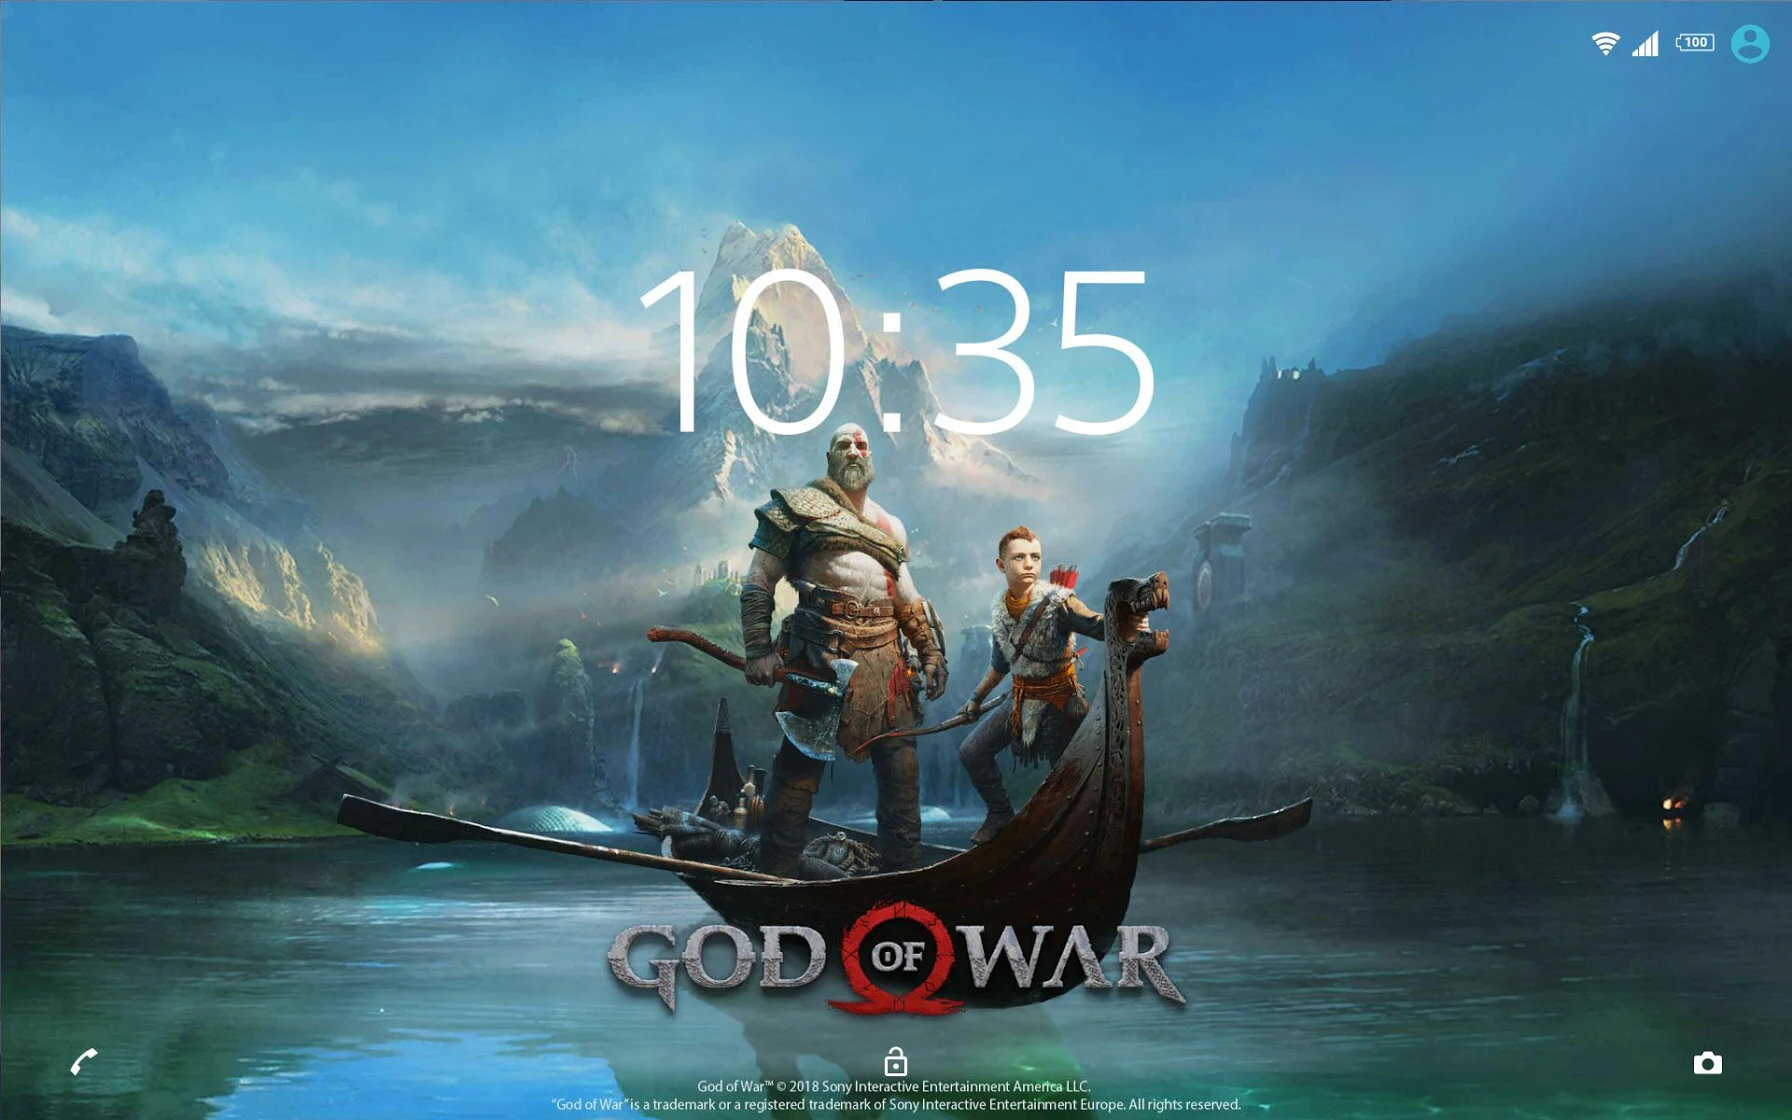 download god of war and the sims mobile xperia themes